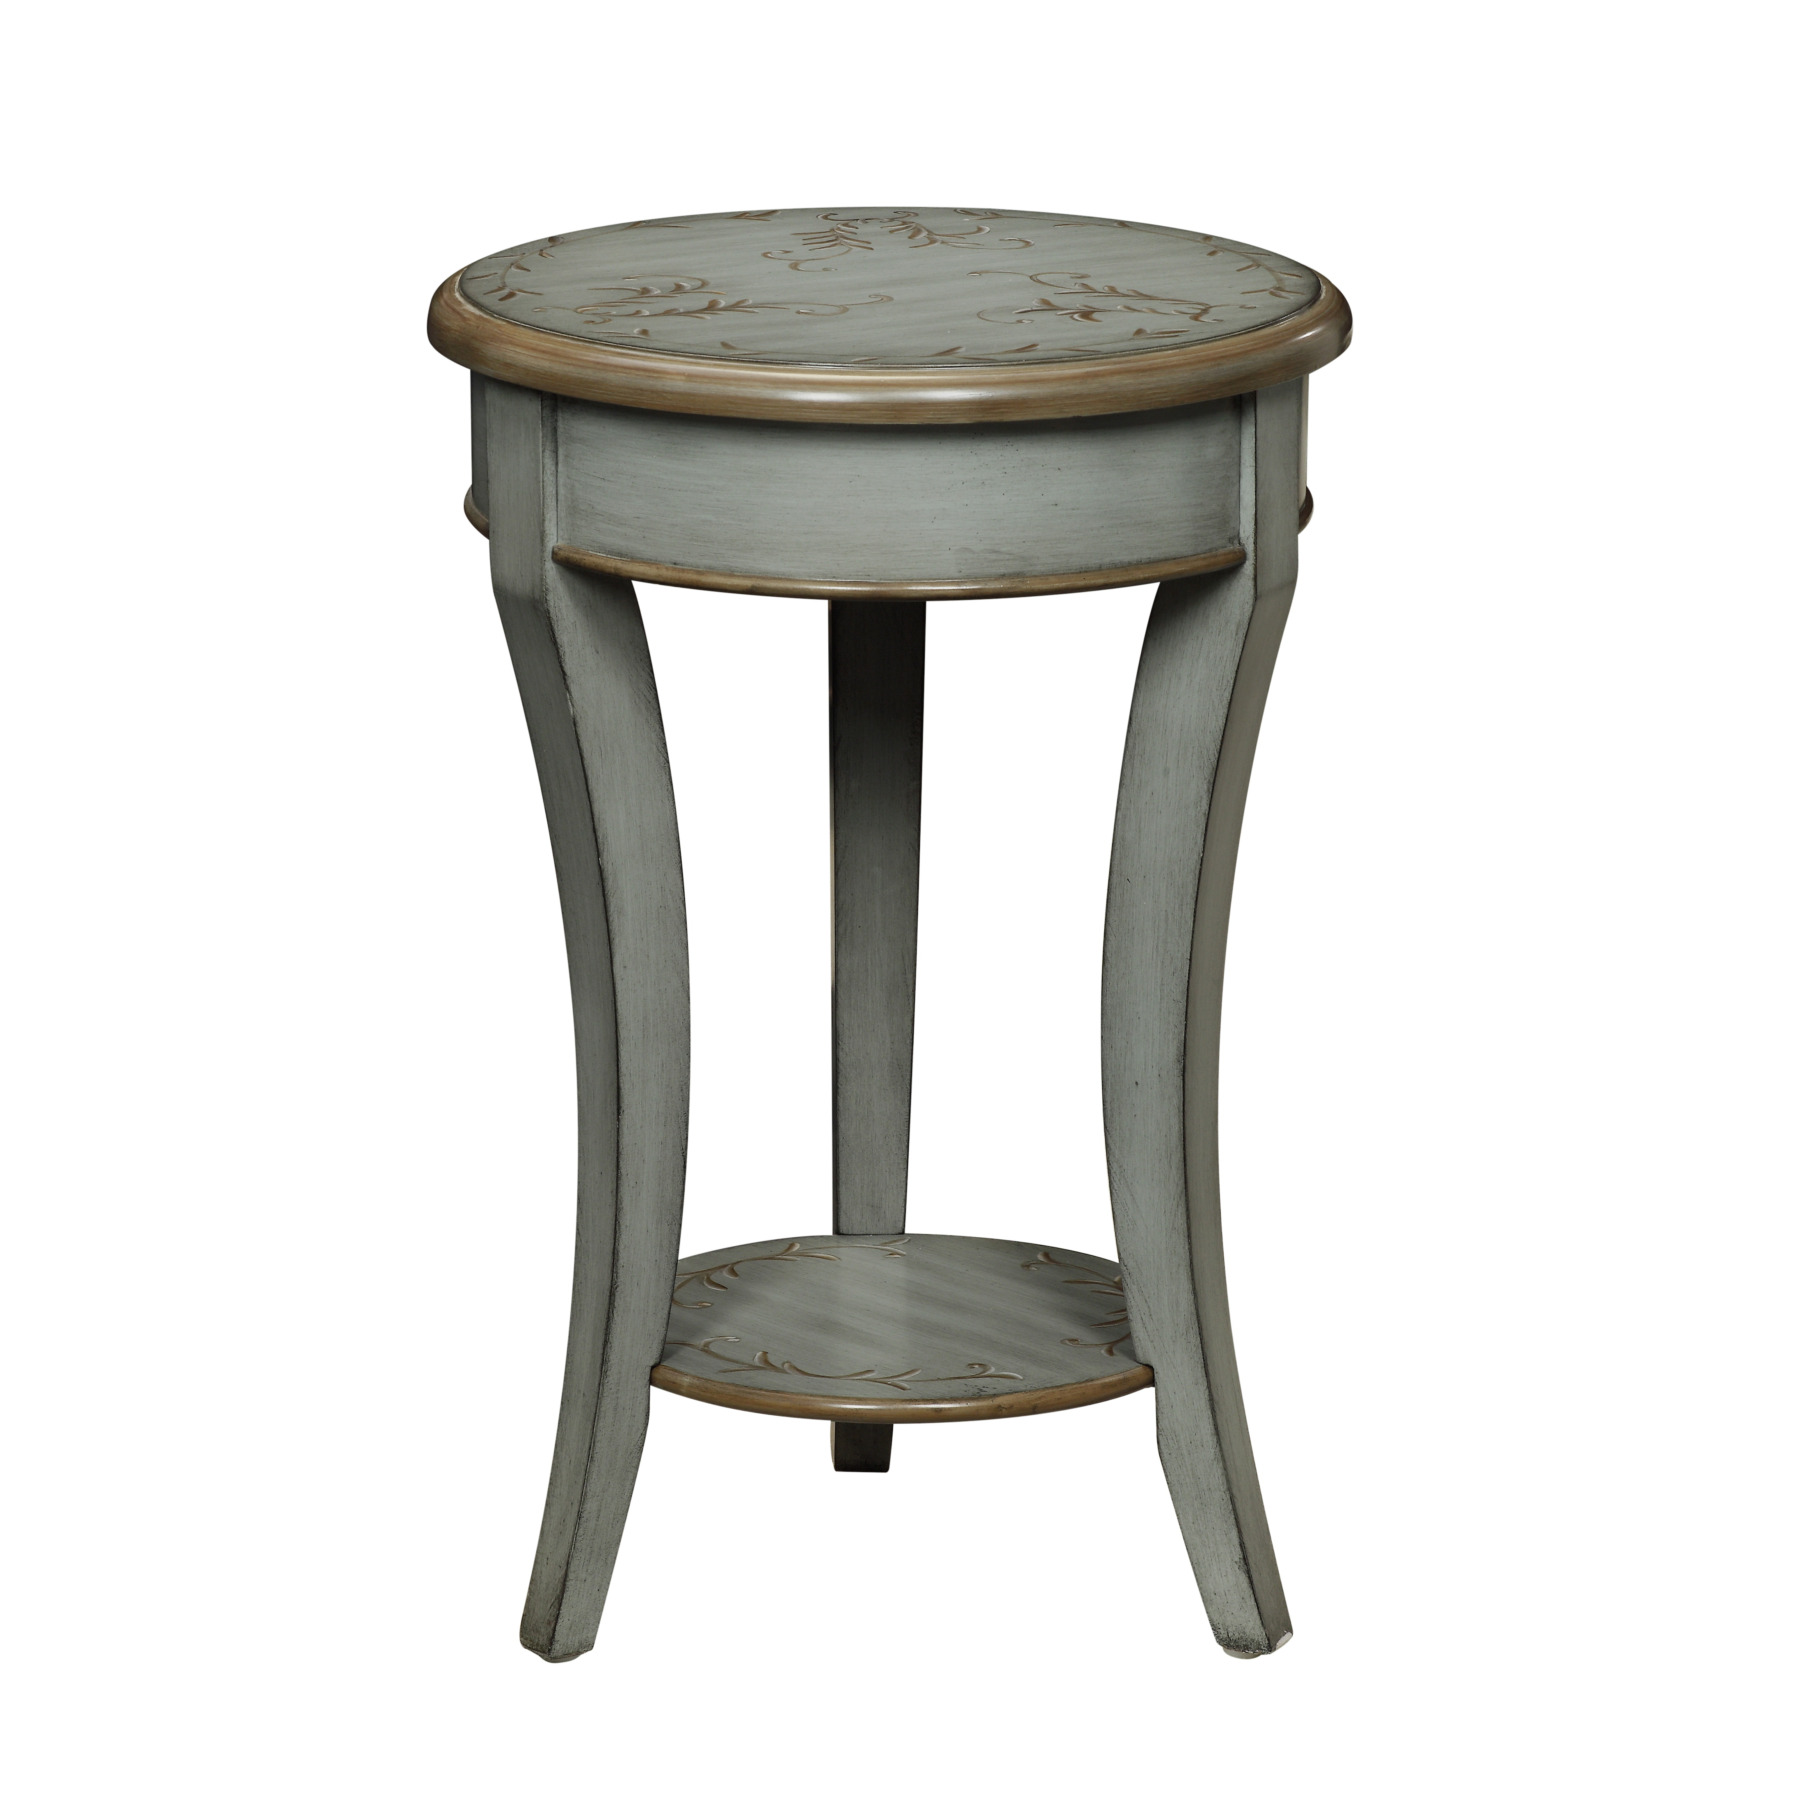 michael anthony furniture floral top greygreen round gray accent table grey target hammered metal coffee aqua blue linens over the couch canadian tire patio sets tiffany leadlight